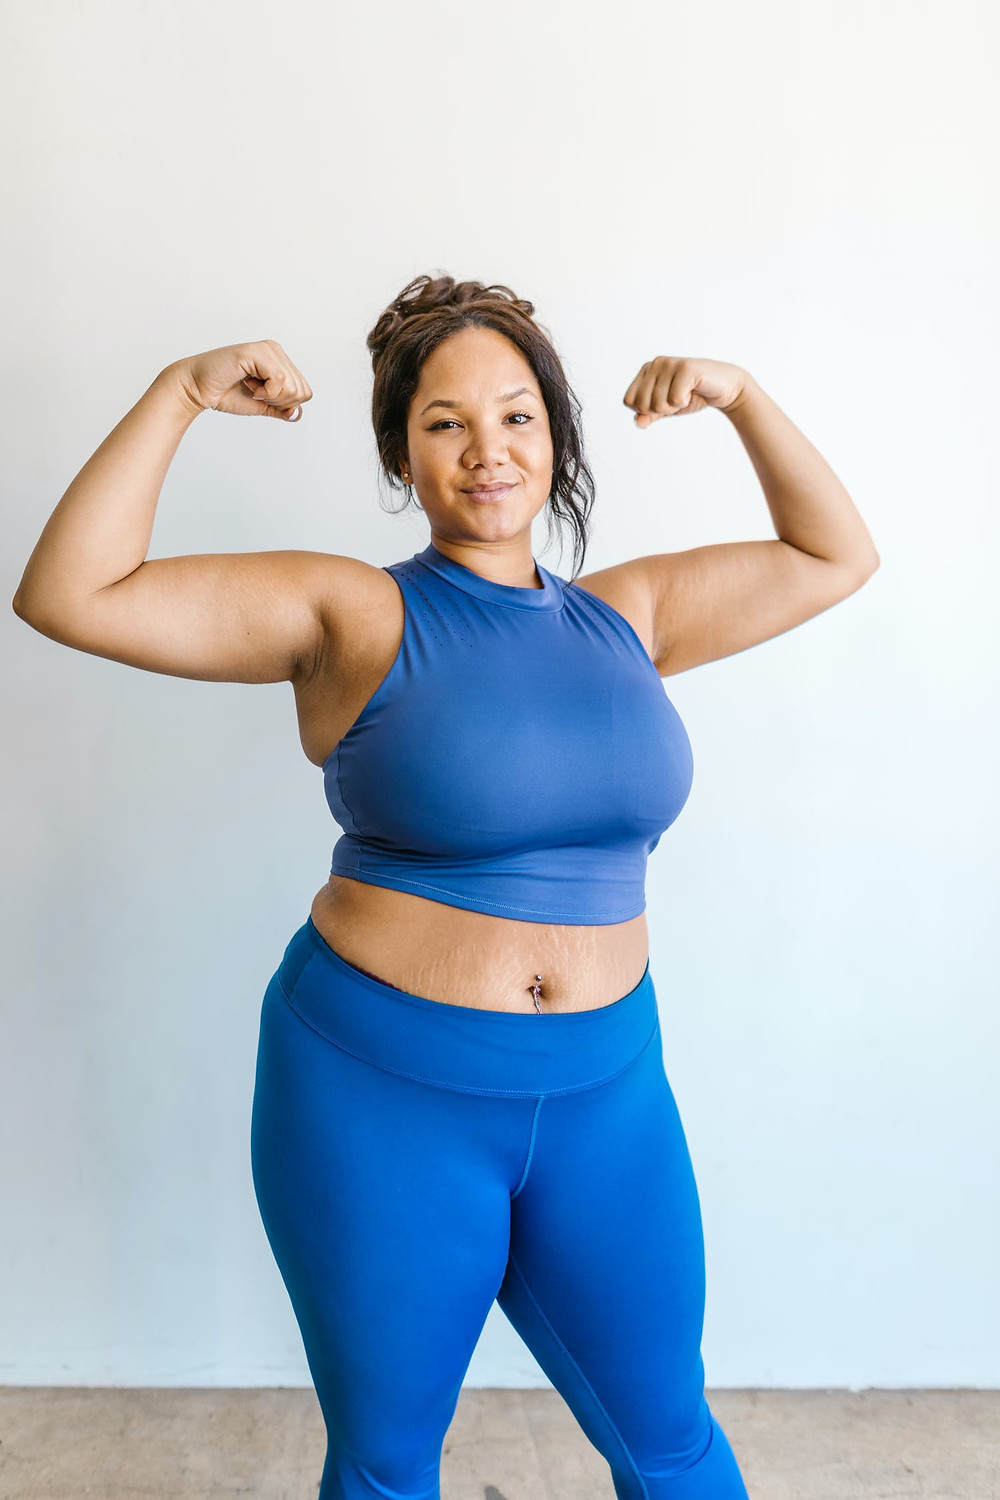 Fat brown mixed race woman in blue athletic crop top and leggings proudly flexing her biceps and smiling